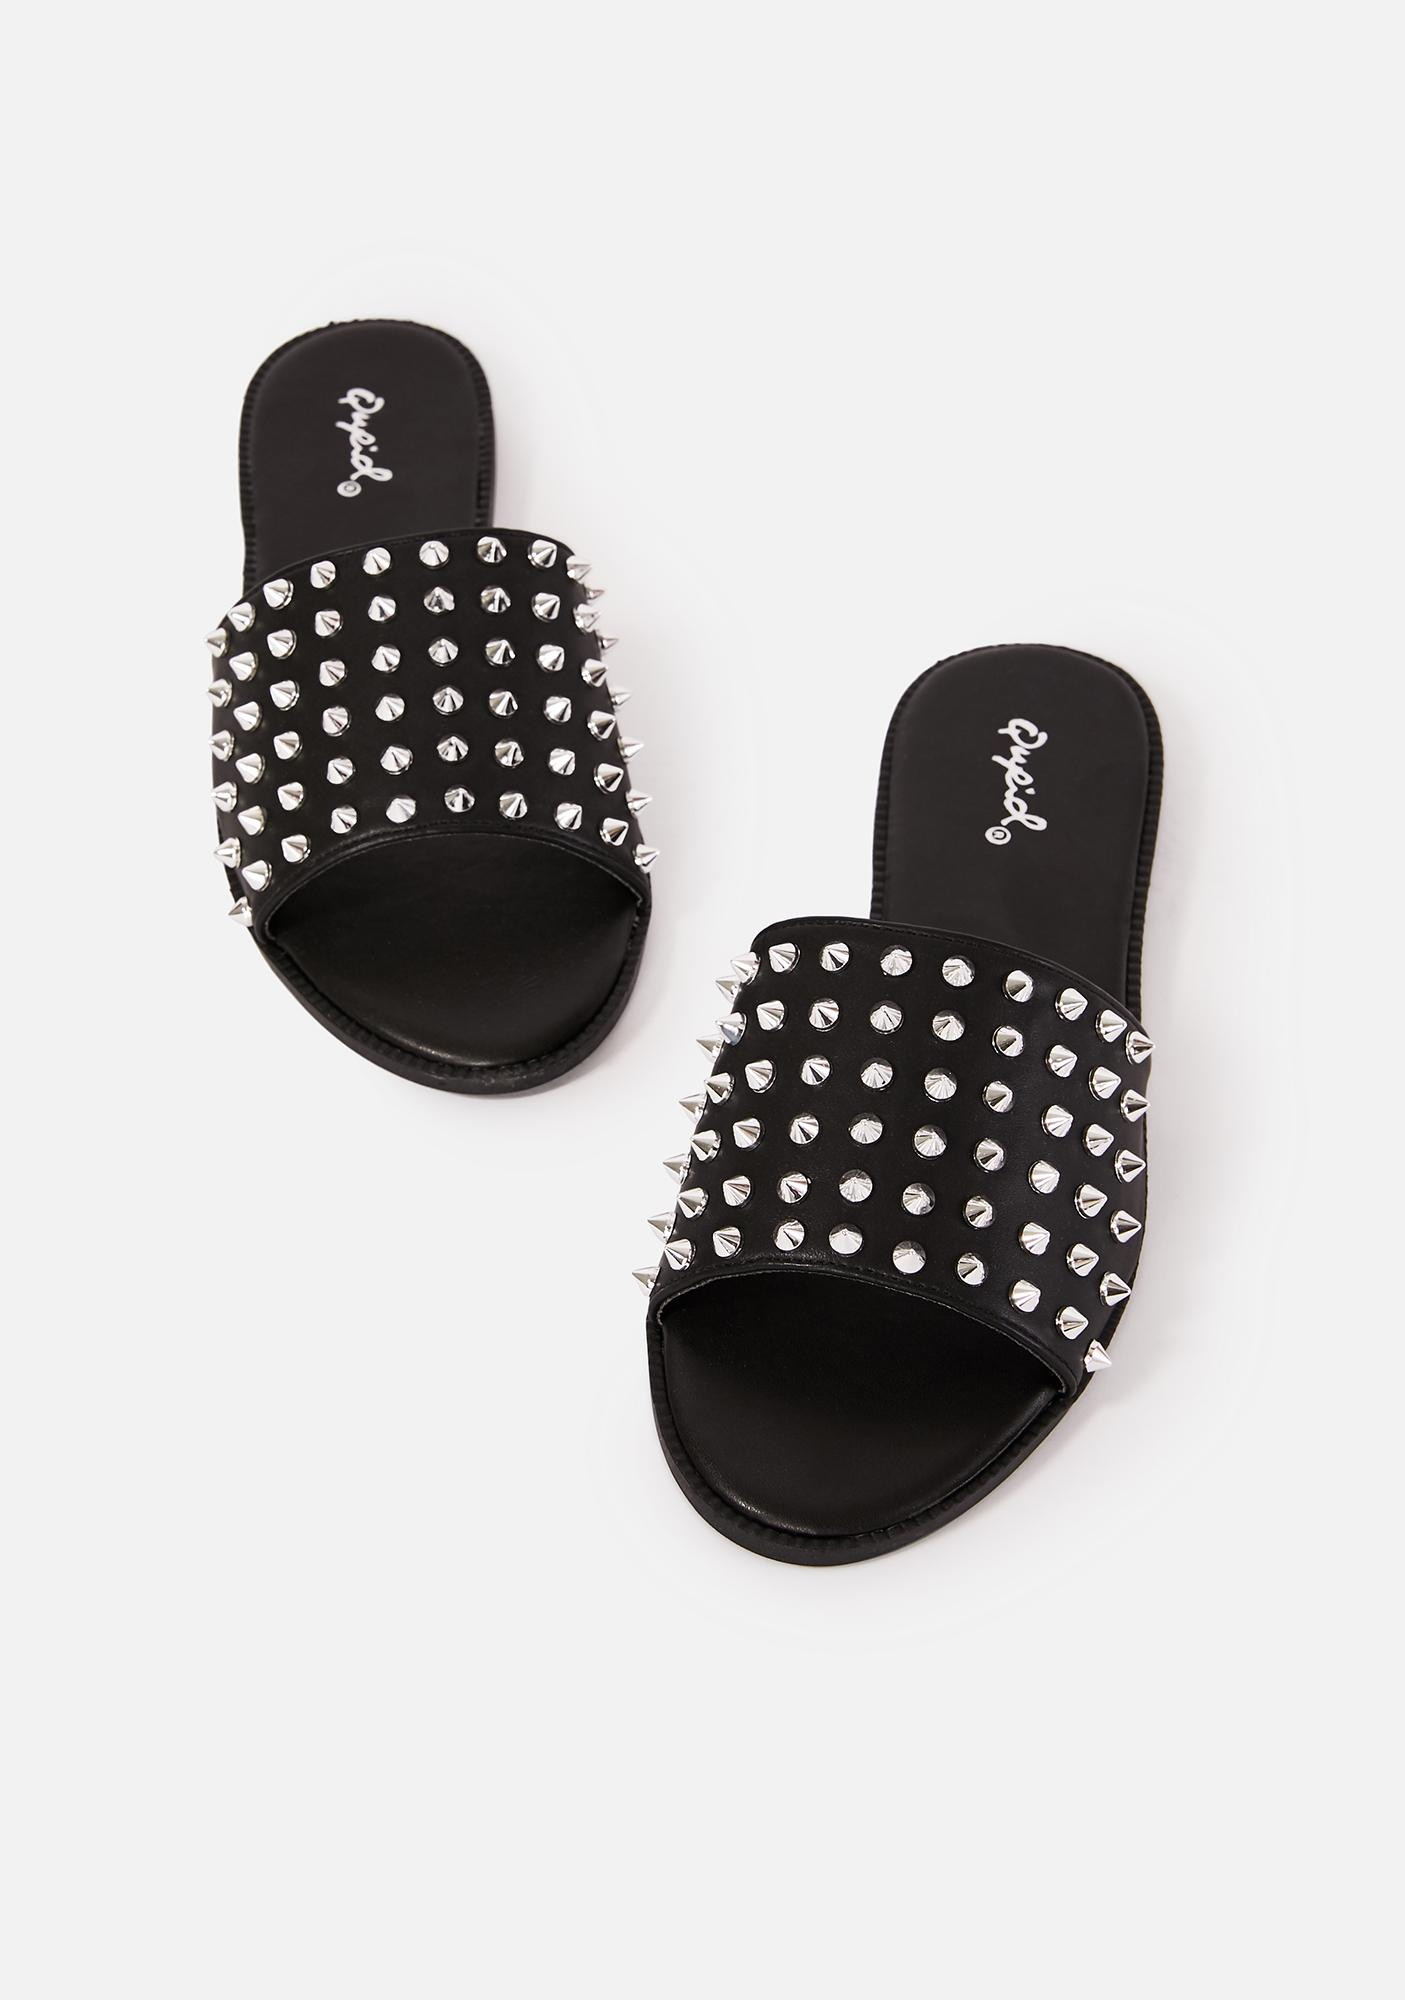 Watch Your Step Spiked Slides